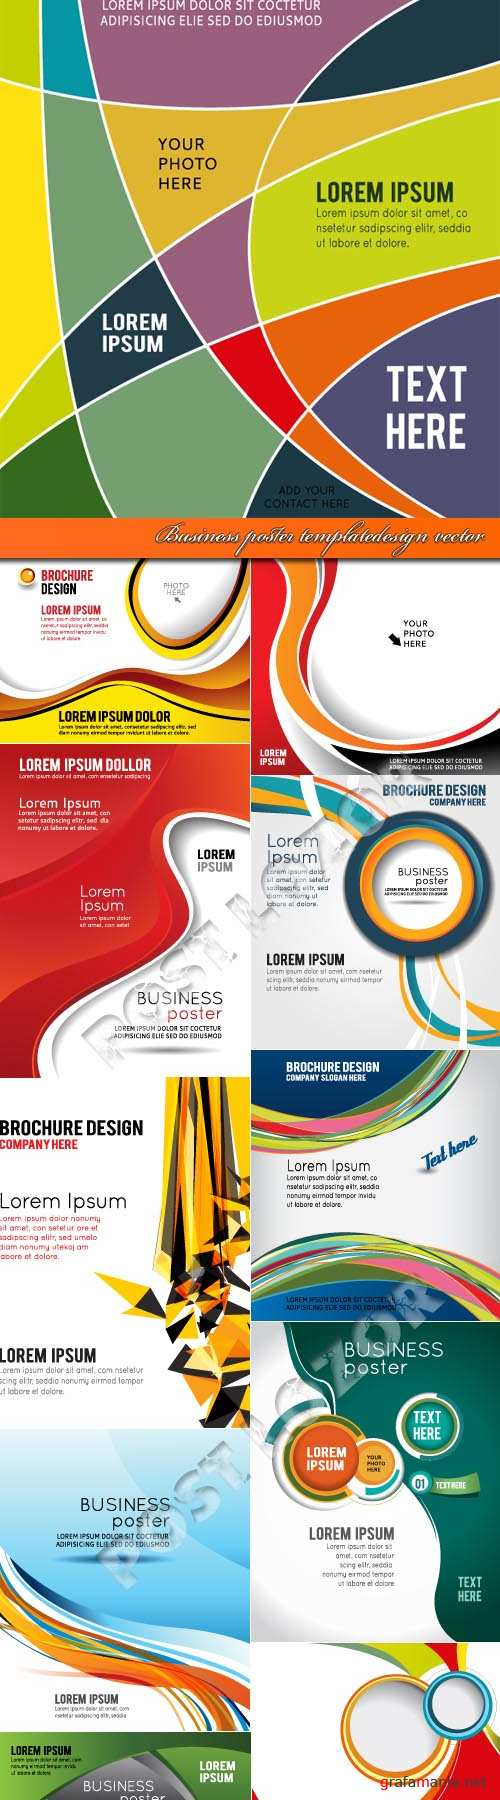 Business poster template design vector